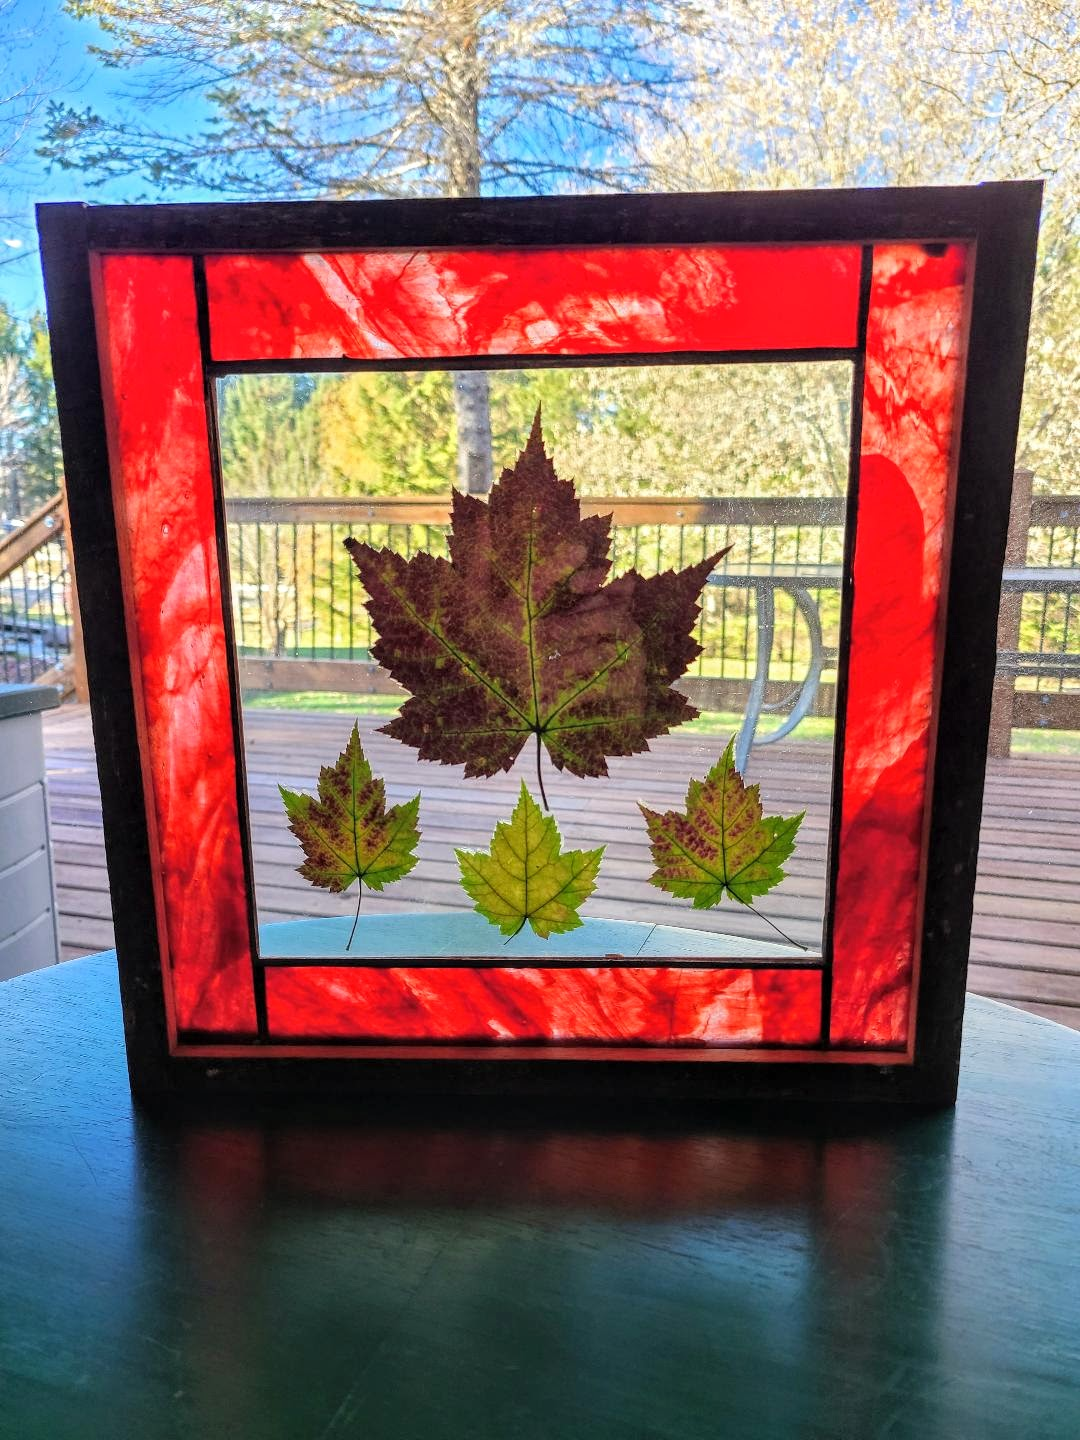 Stained glass with Maple leaves